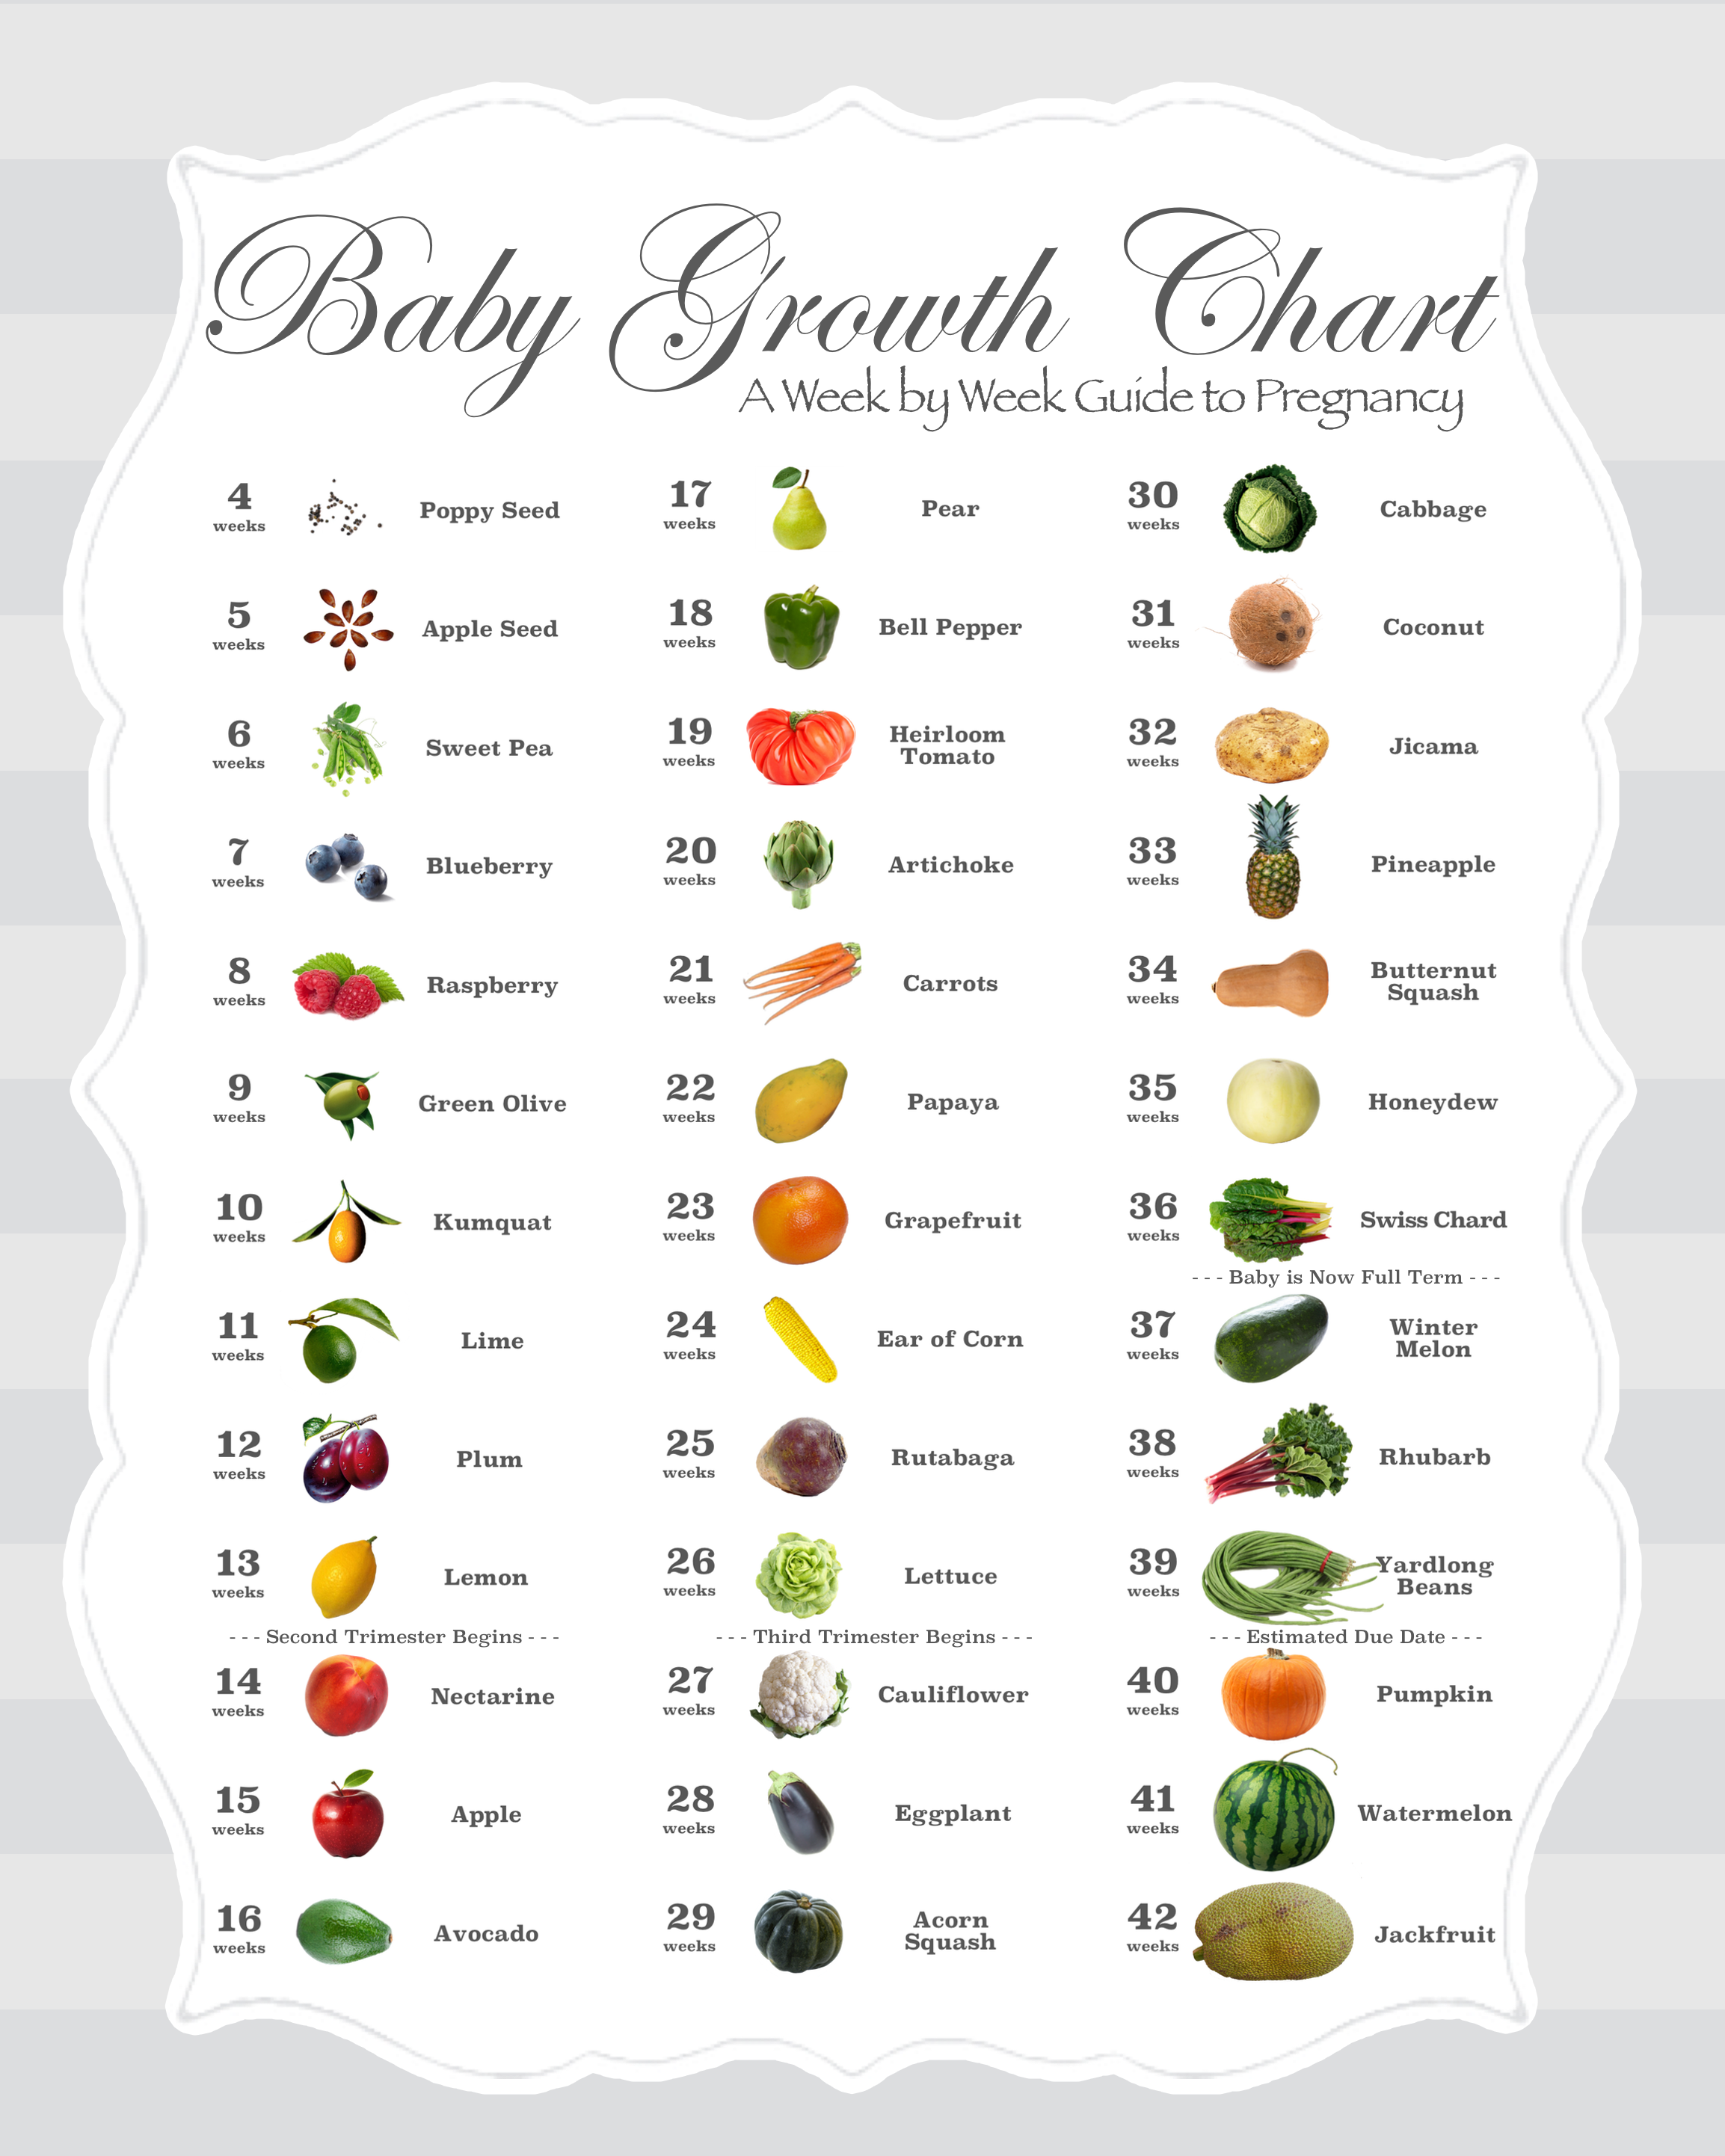 Pin on Baby Size Charts and Timelines